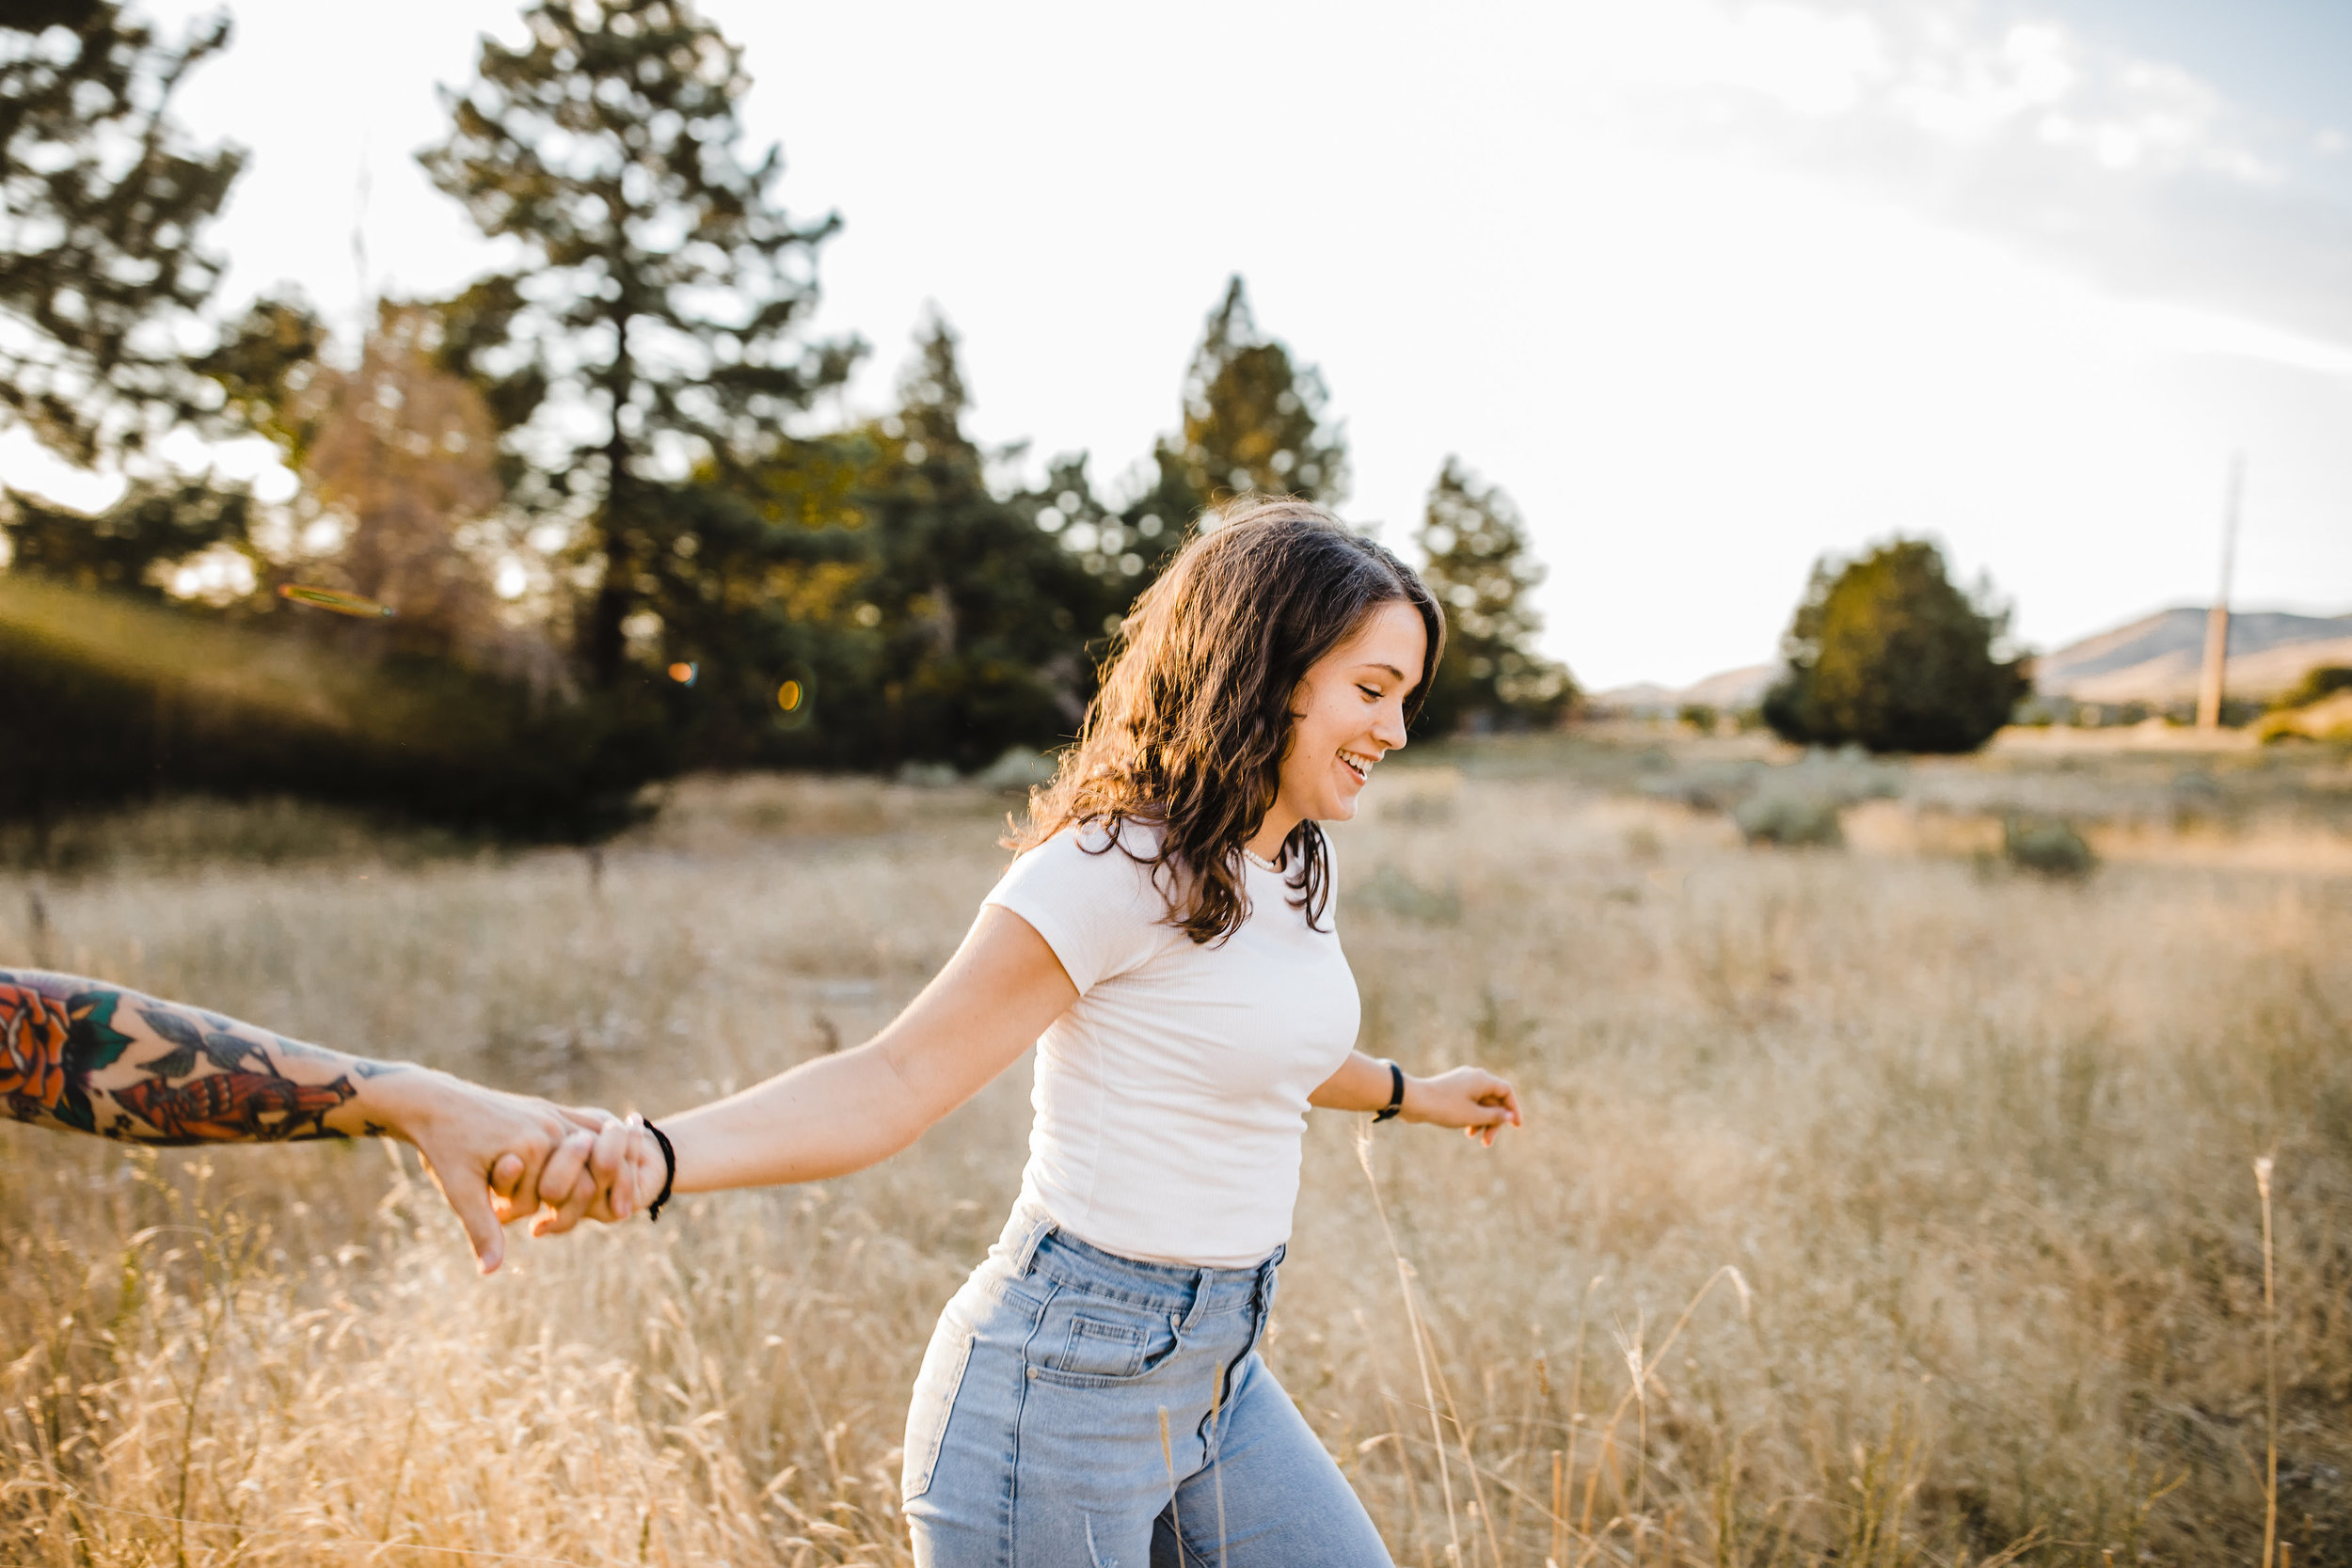 professional engagement photographer in cache valley utah holding hands running exploring happy fields